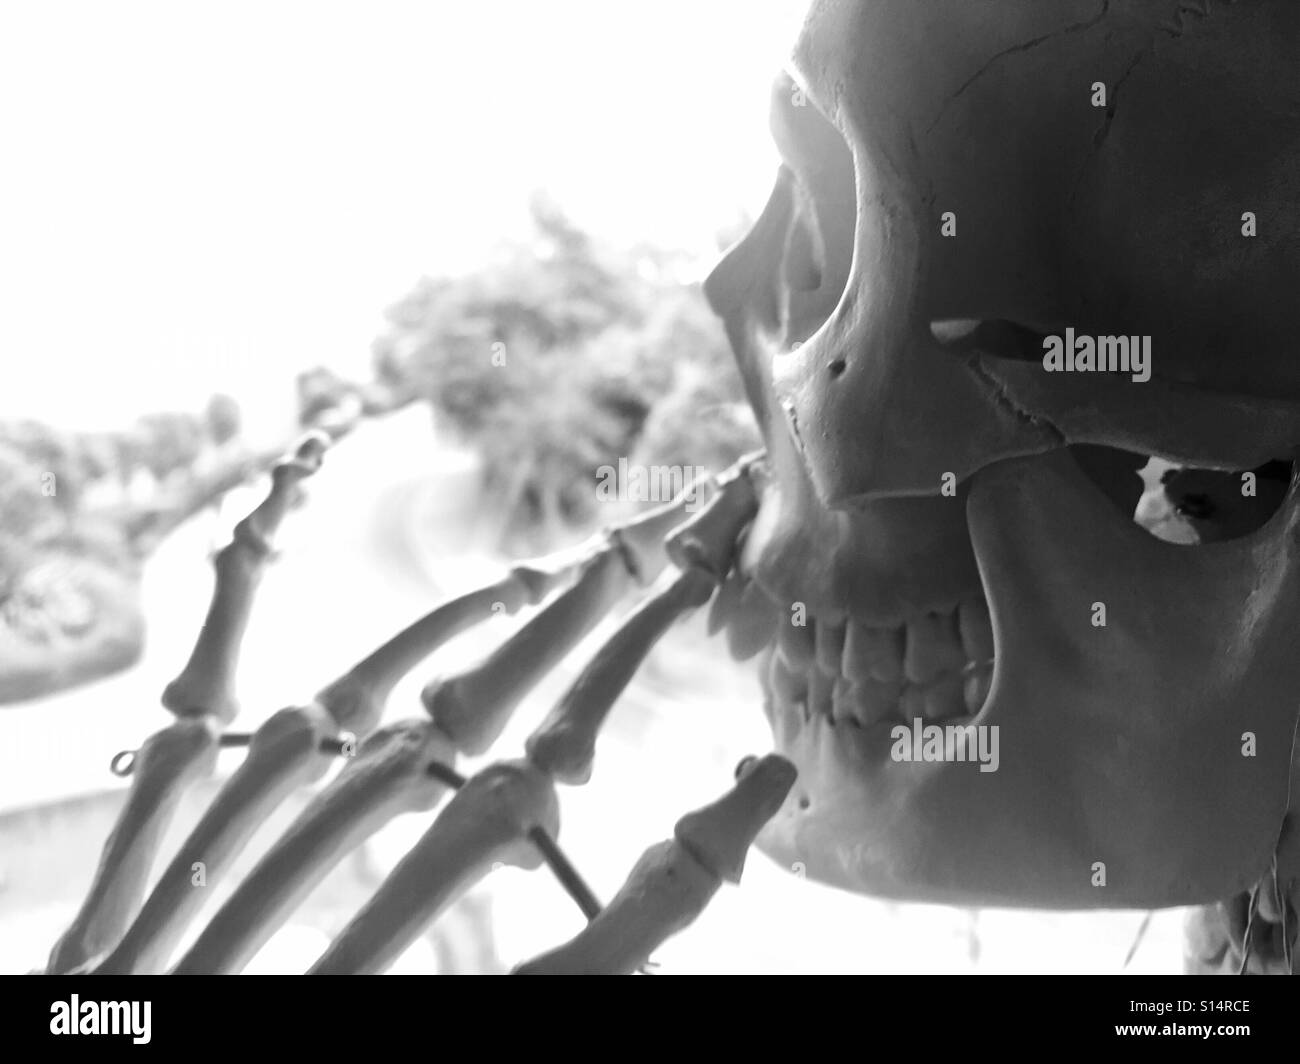 A skeleton blowing out cigarette smoke. - Stock Image